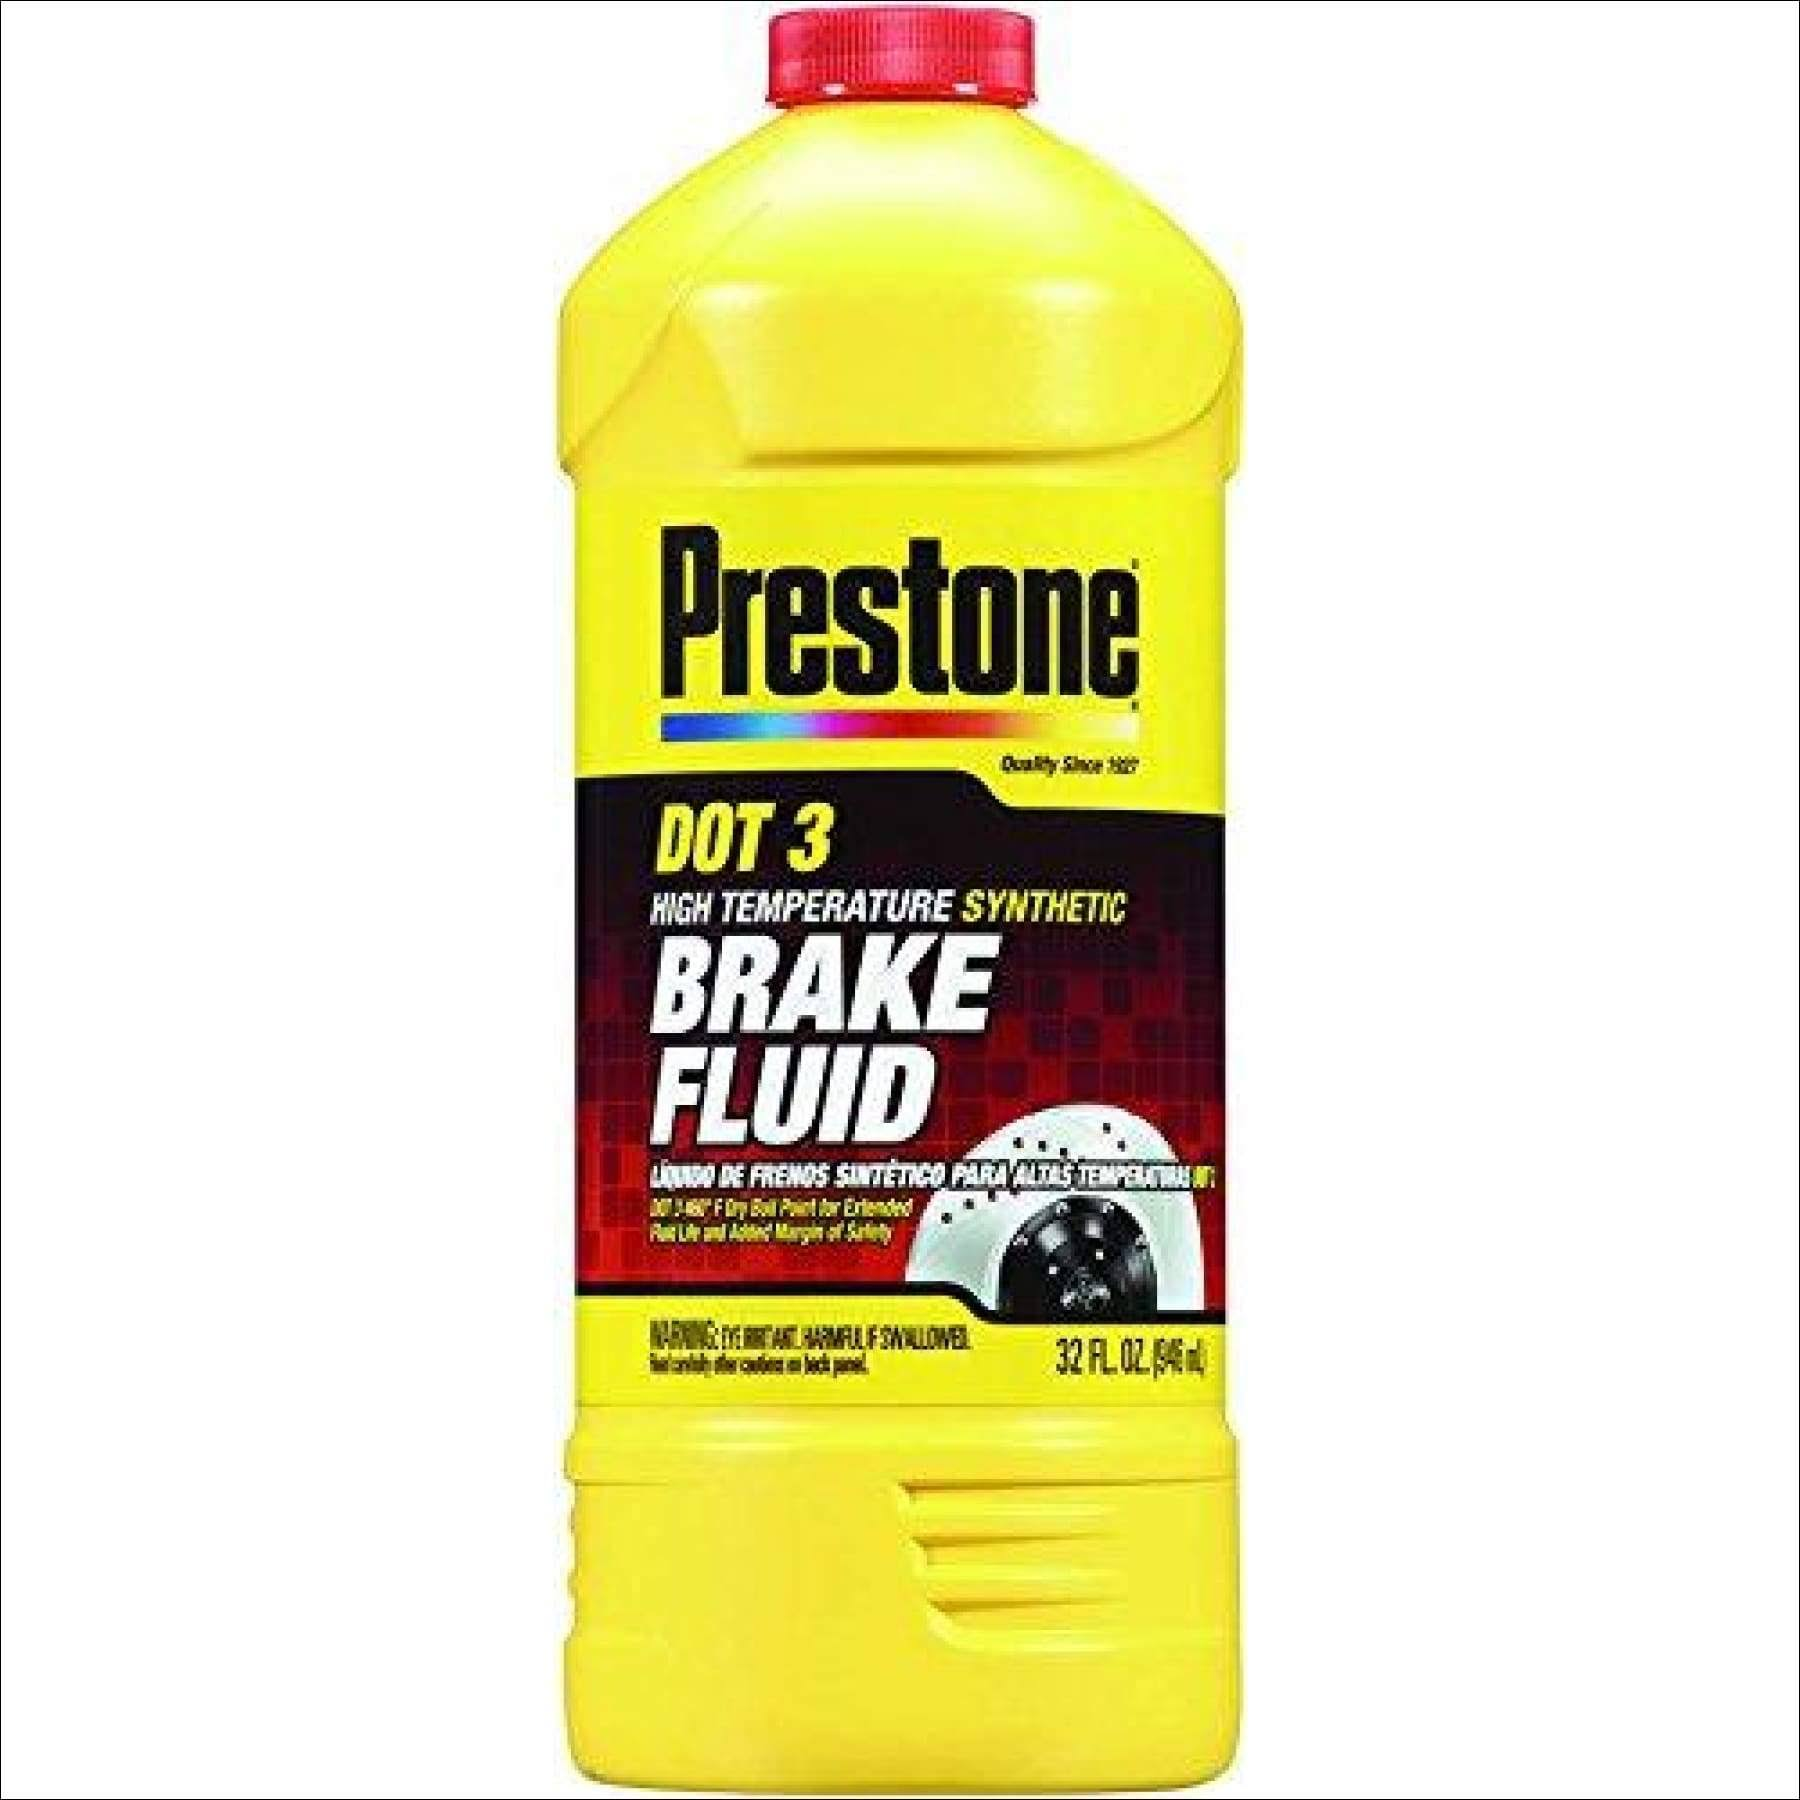 Prestone Dot 3 Synthetic Brake Fluid - 32oz